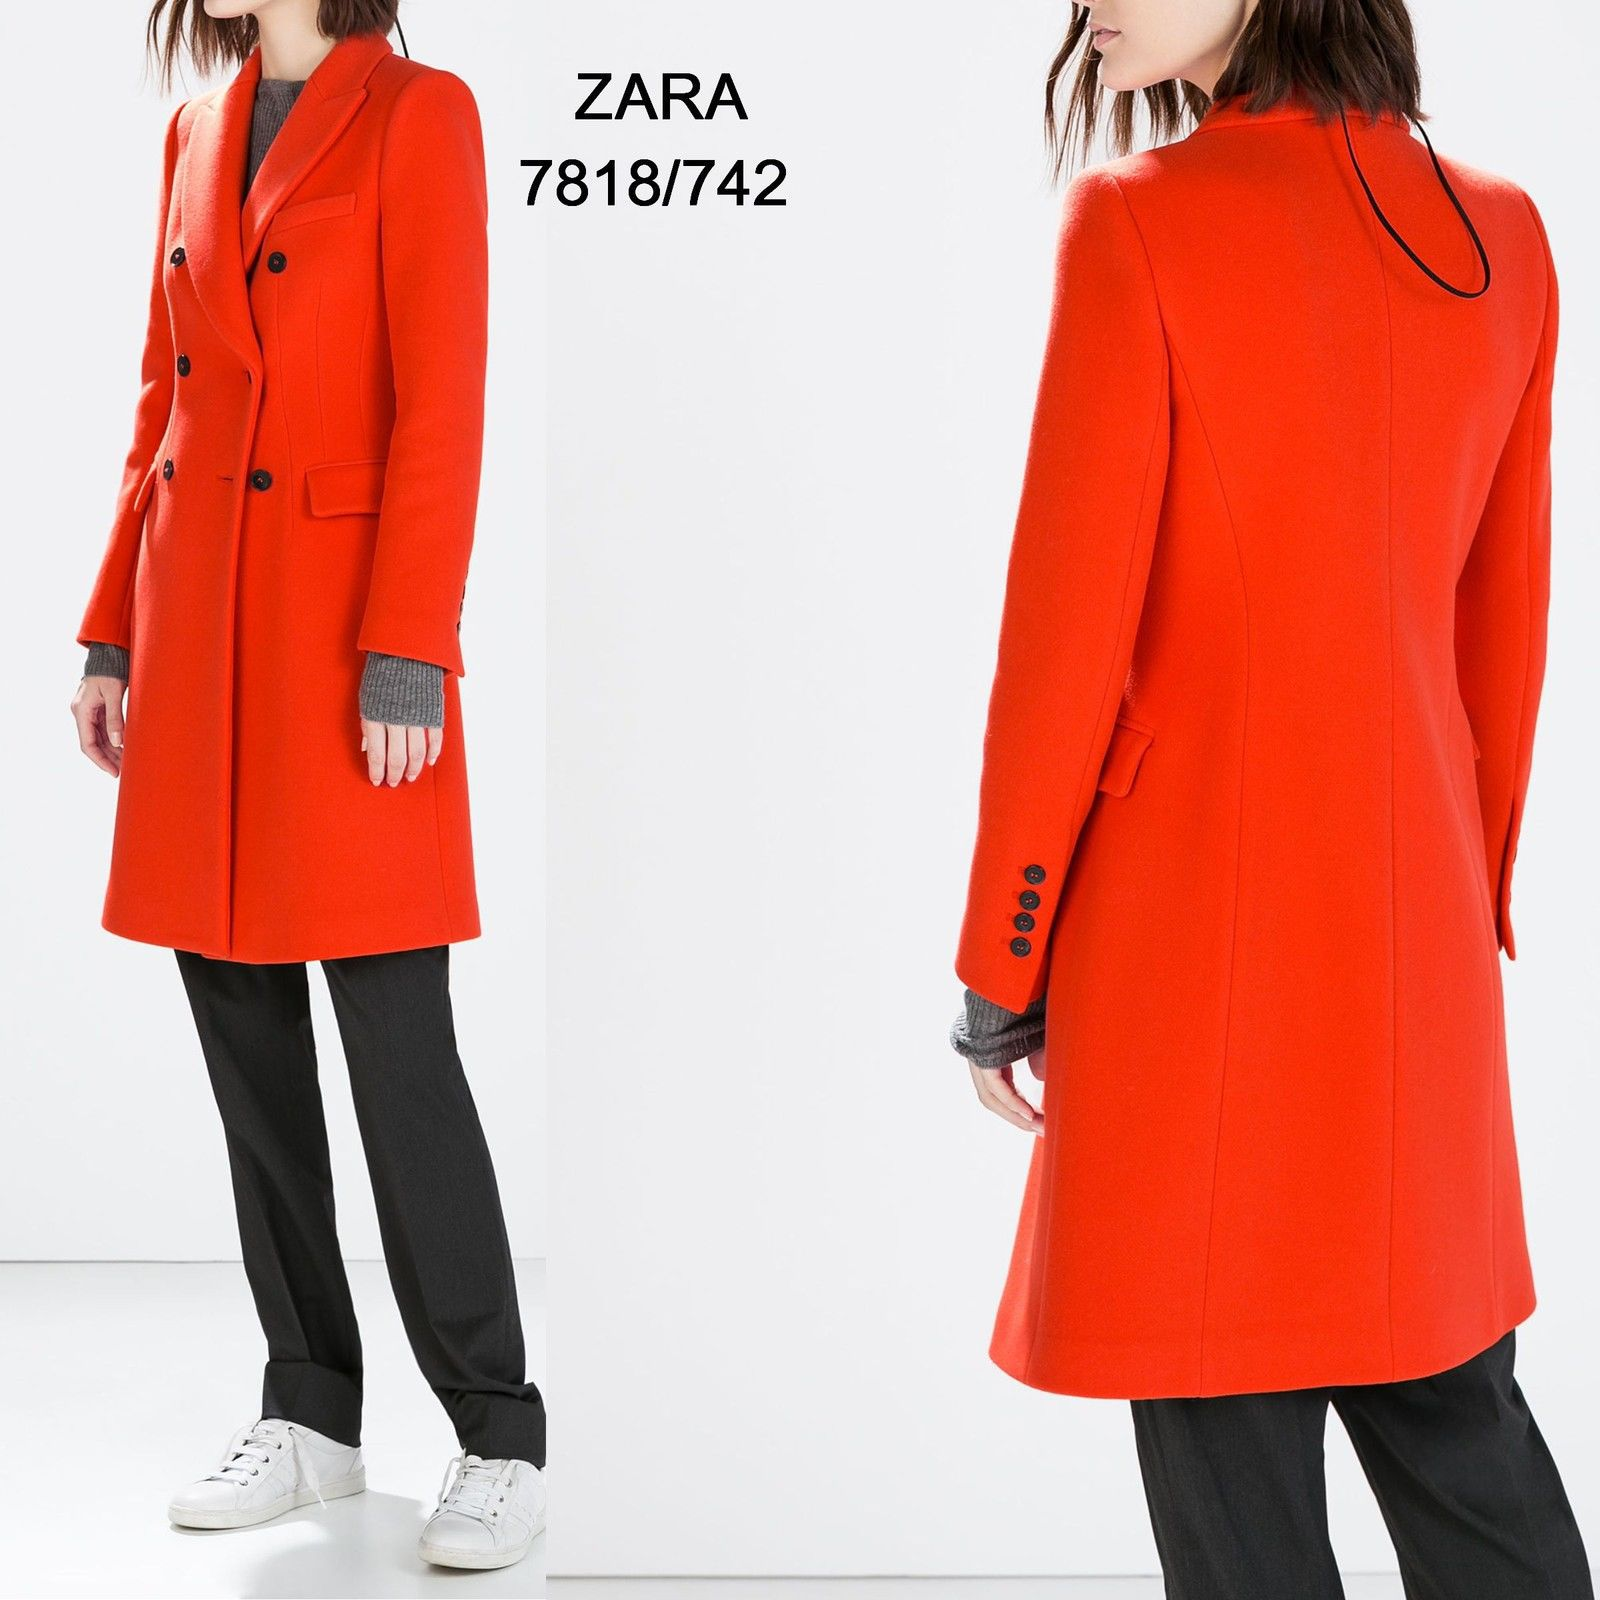 Zara Red Double Breasted Coat - 7818/742